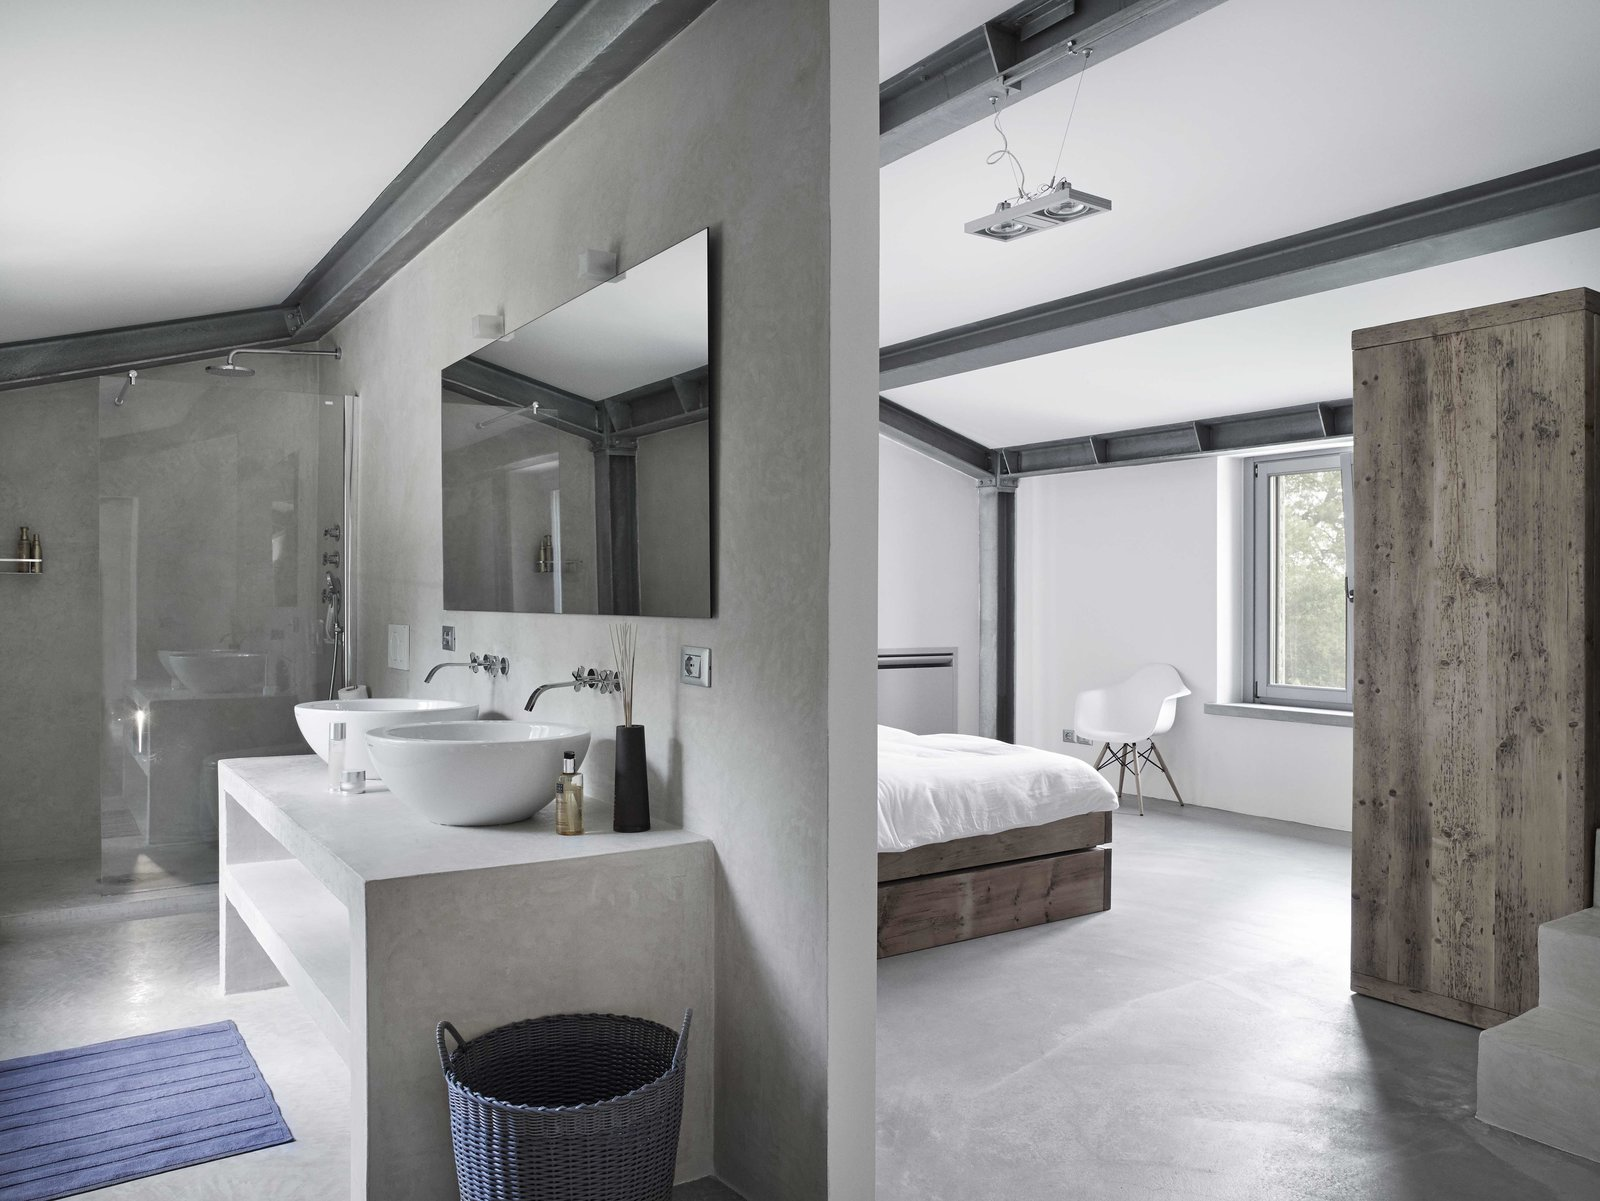 Tagged: Bath Room, Concrete Counter, Concrete Floor, Vessel Sink, Enclosed Shower, Concrete Wall, Corner Shower, Wall Lighting, and Pendant Lighting.  Photo 8 of 11 in Stay in a Modern, Industrial Home That's Hidden Inside a Traditional Tuscan Villa